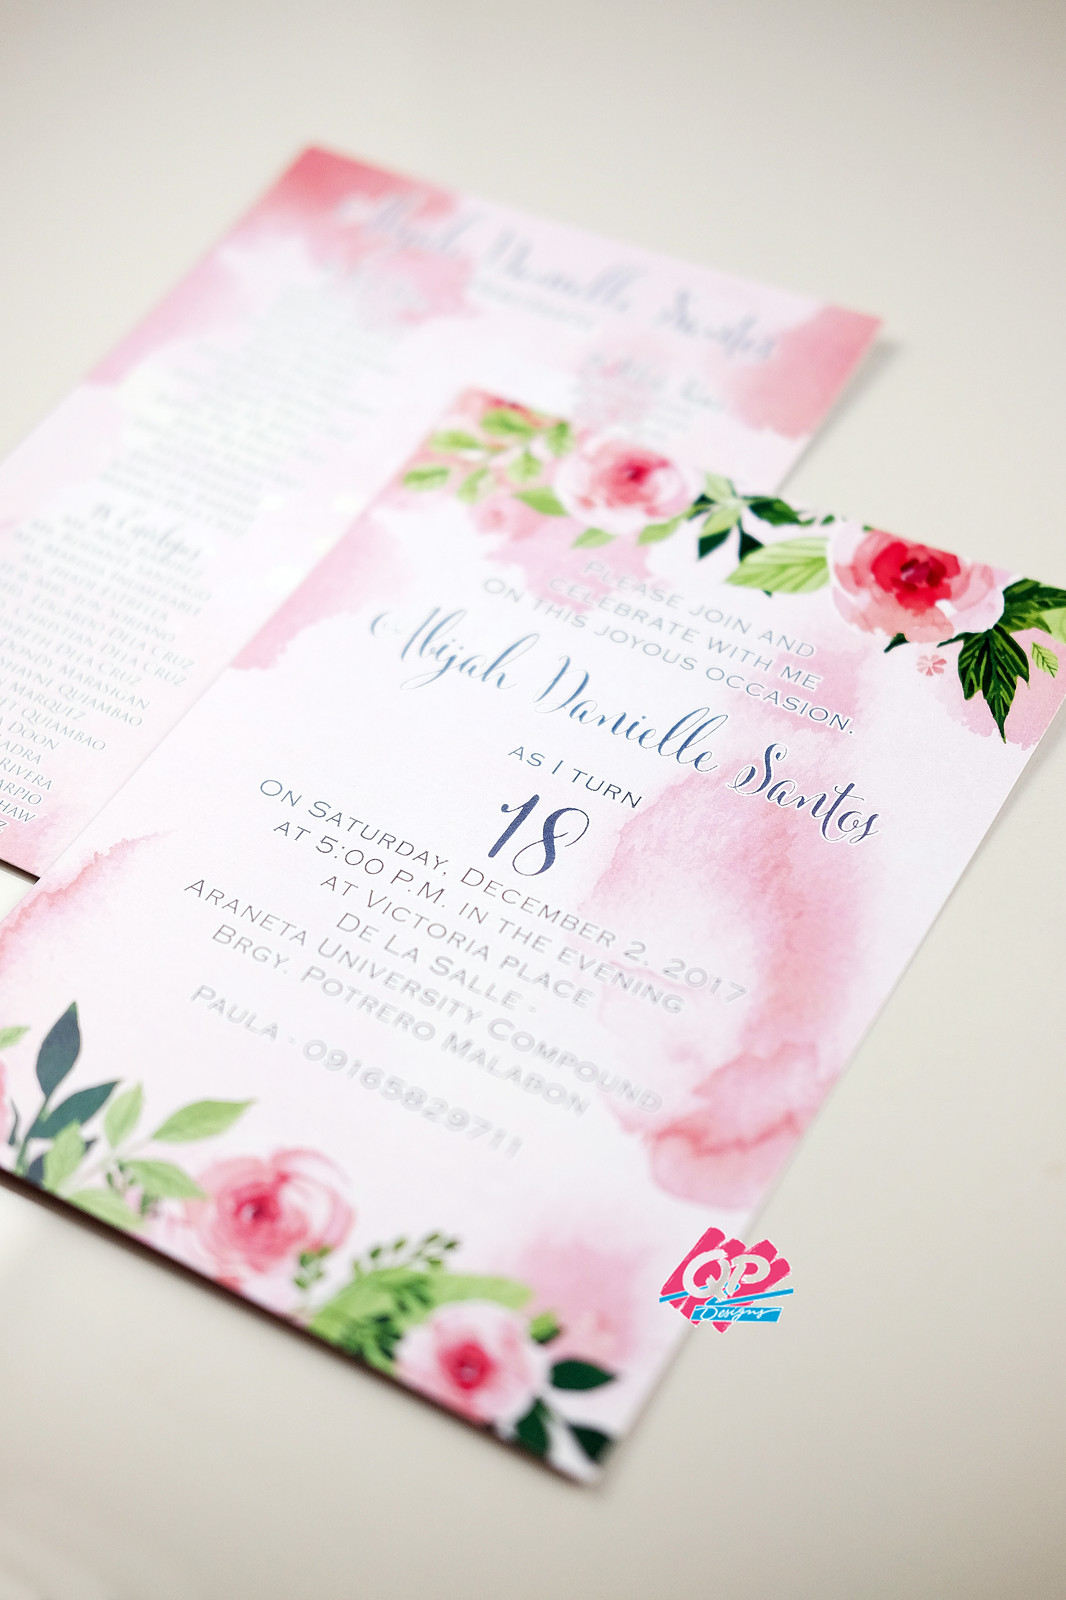 wedding invitations with hearts designs